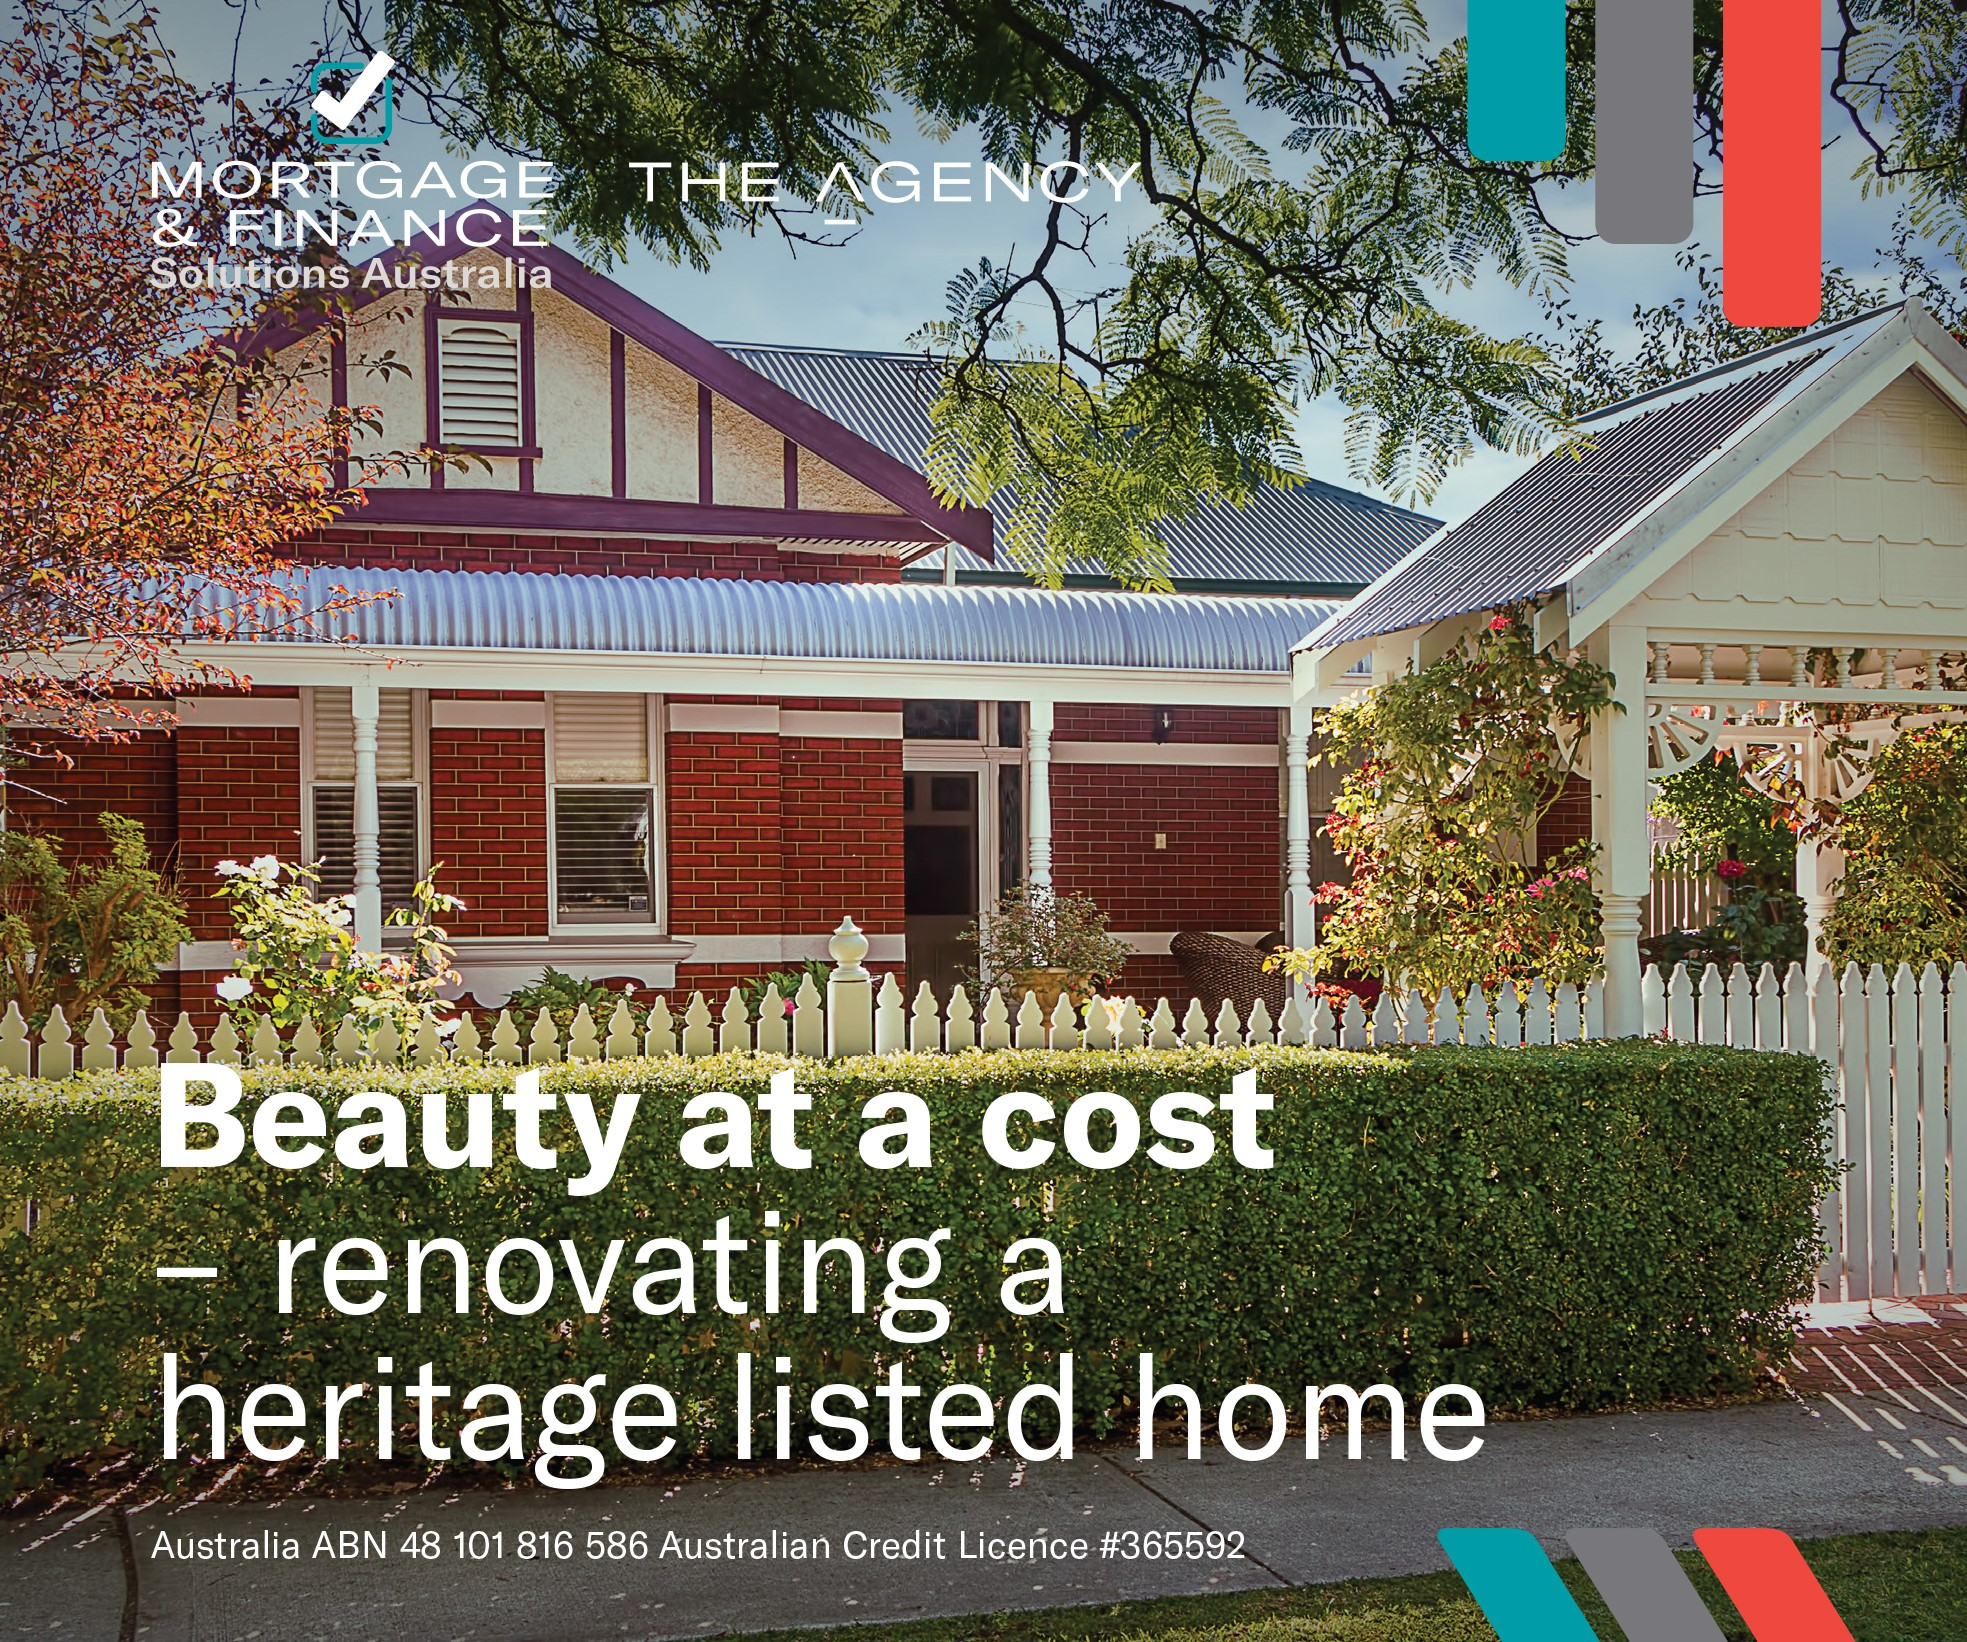 Beauty at a cost - renovating a heritage listed home